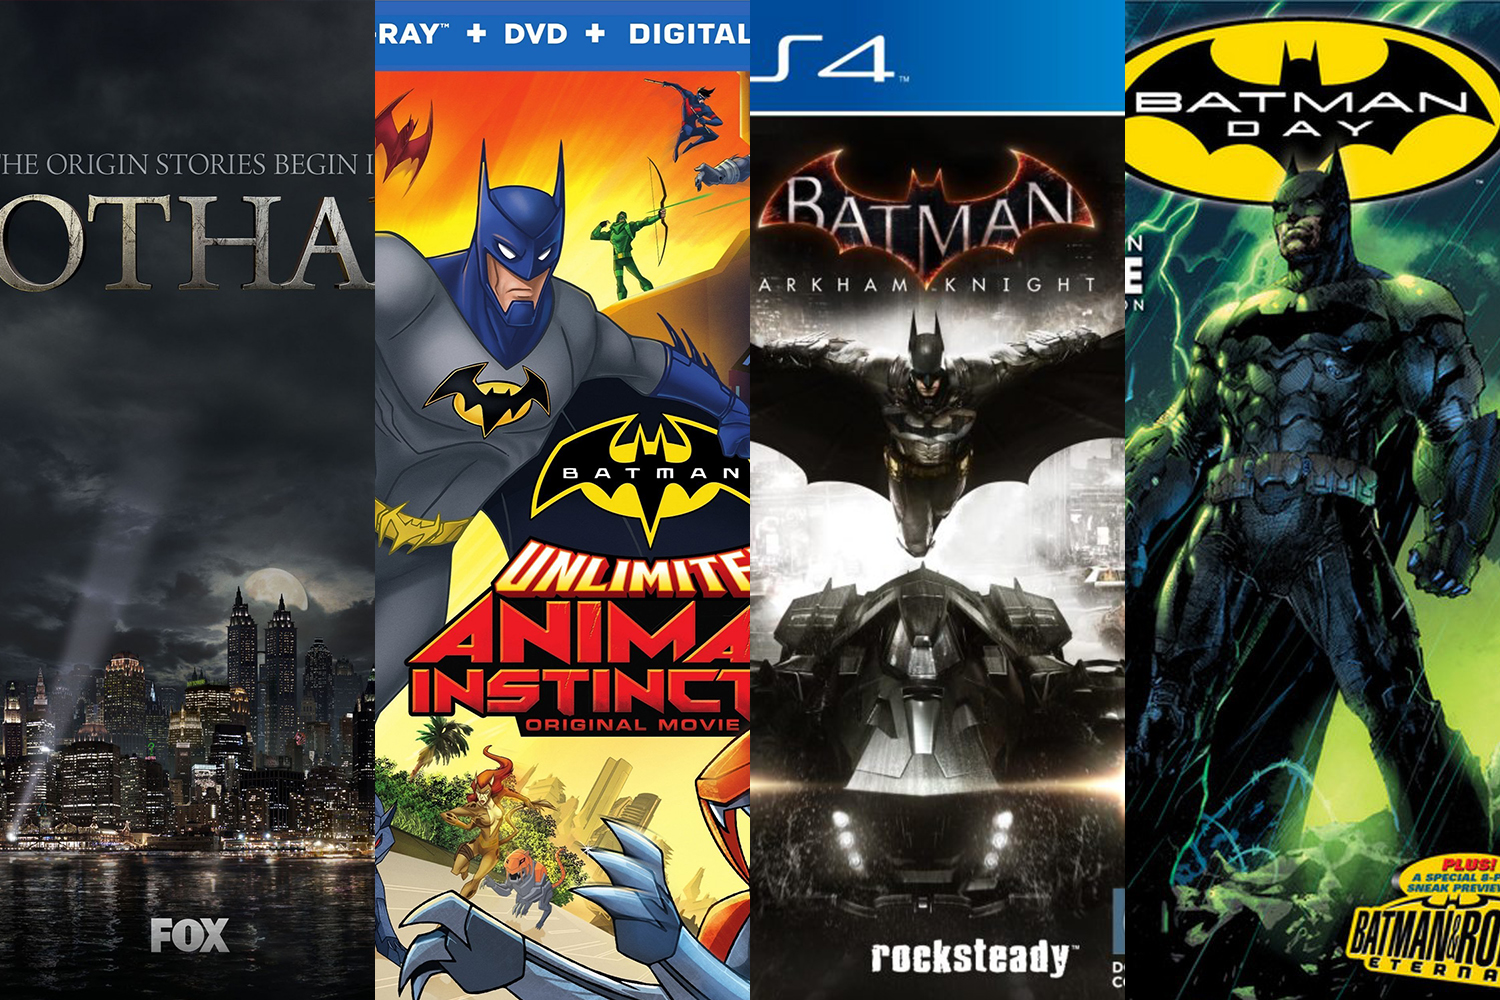 Just a few ways Batman fans can currently get their fix. Don't stop believing, Aquaman fans.